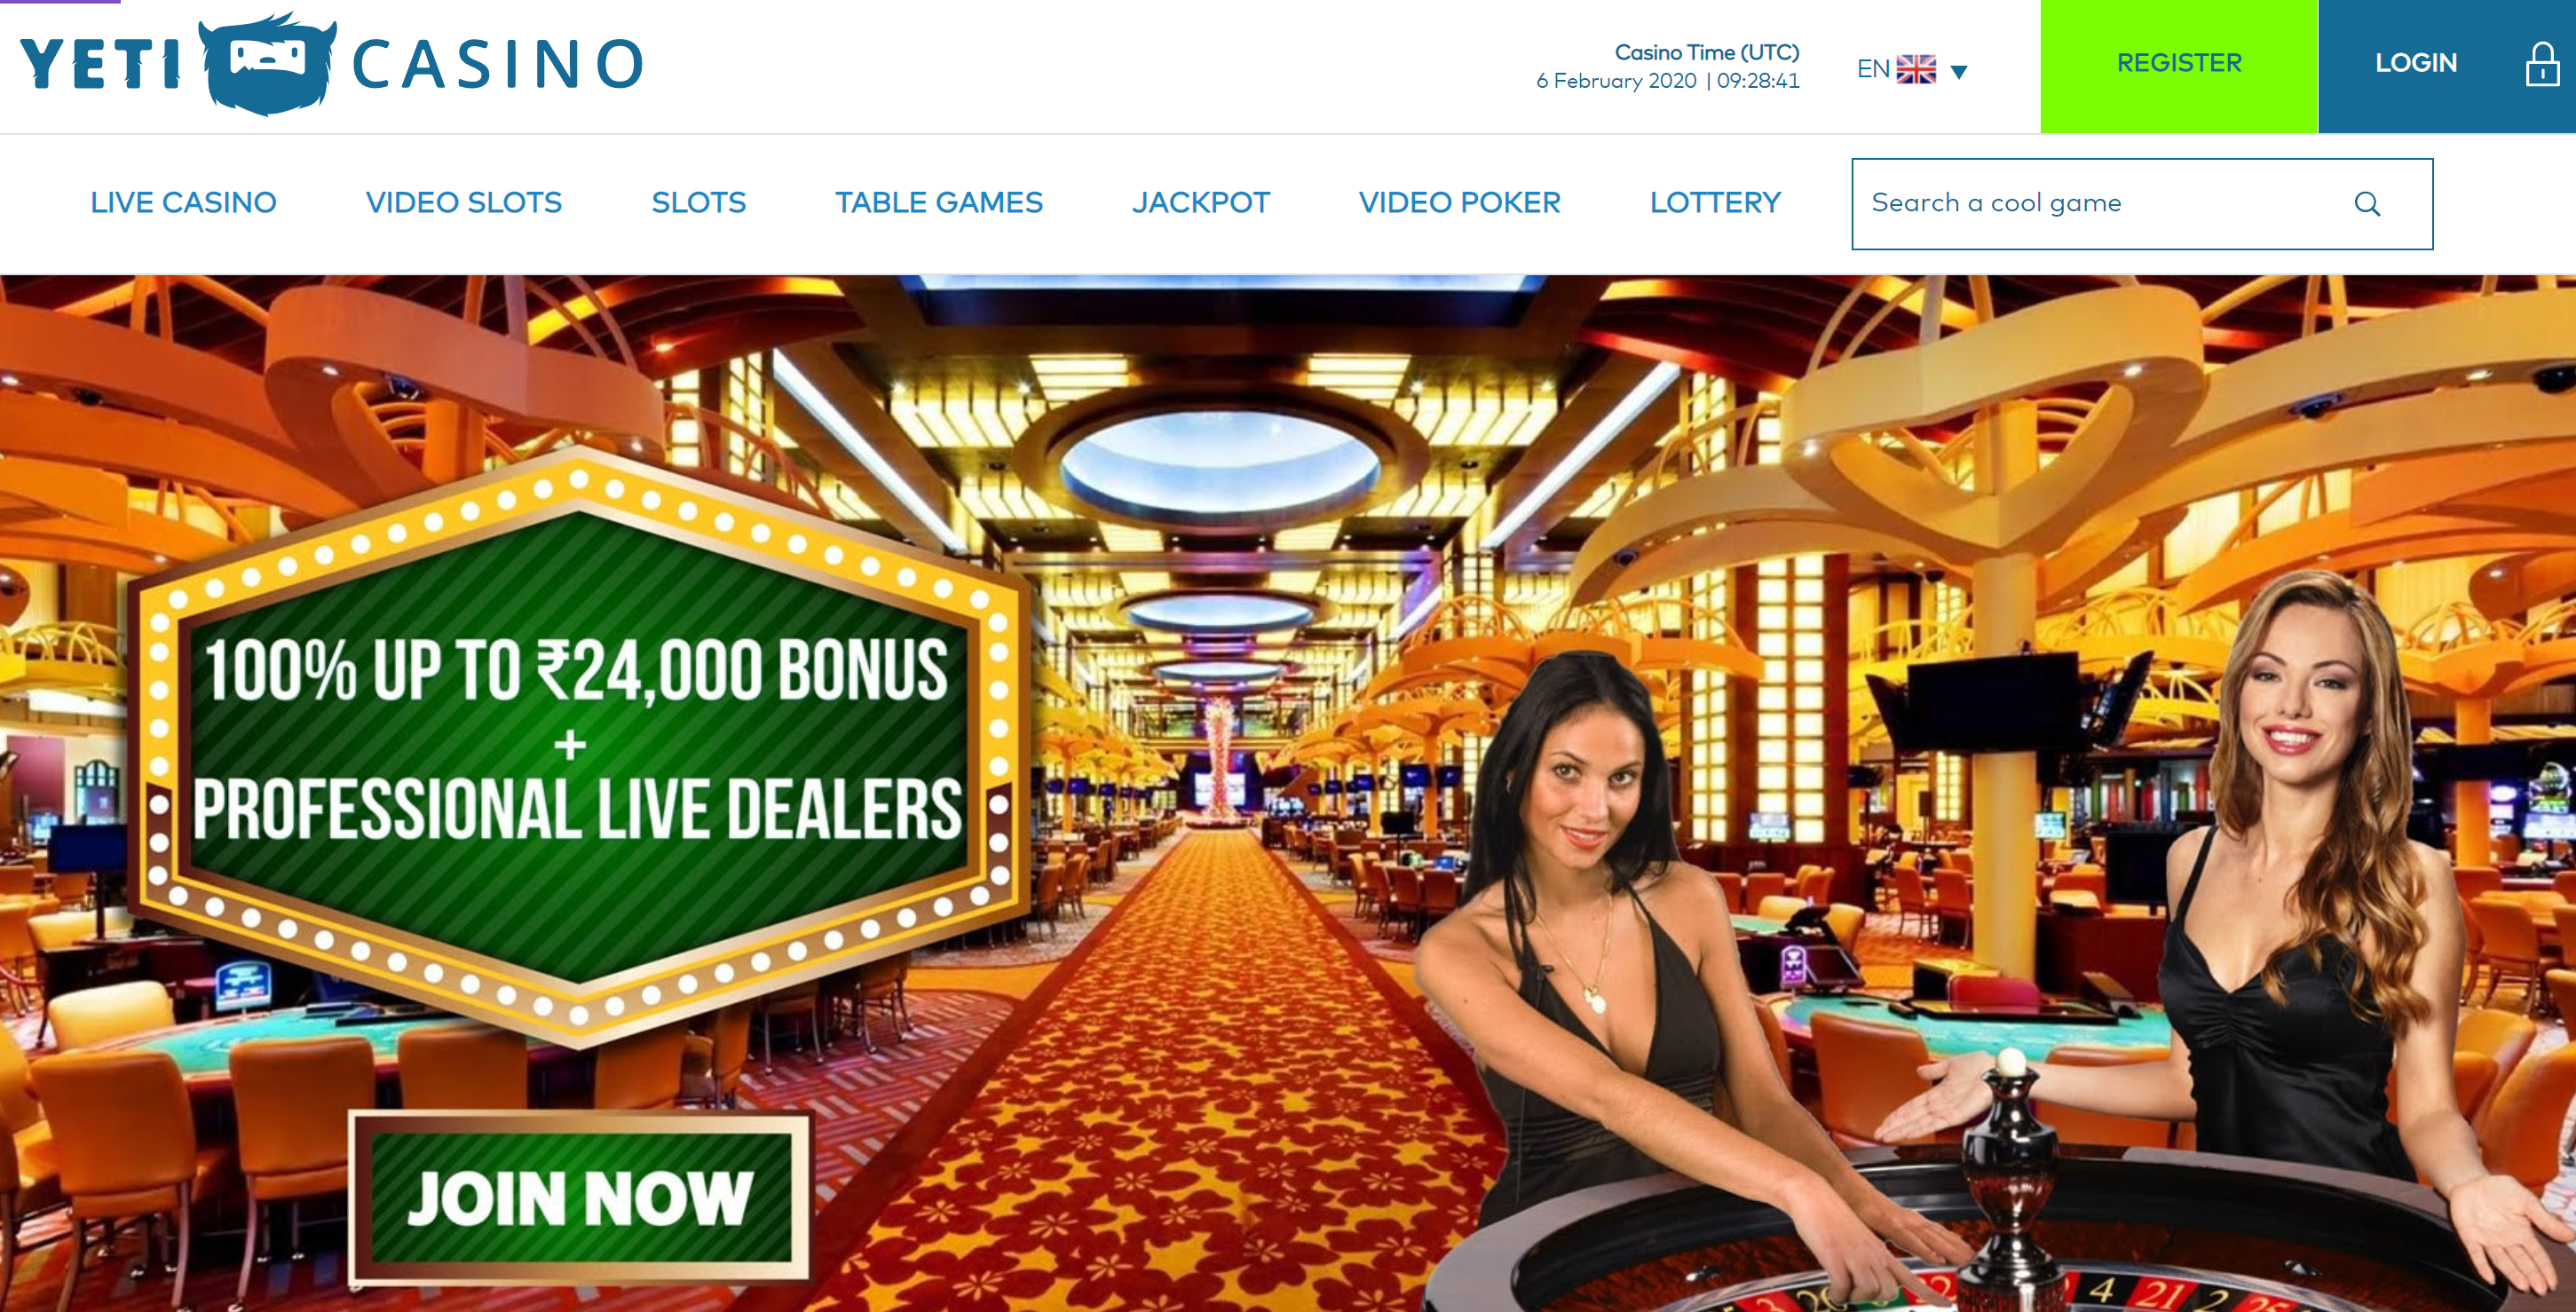 Casino casino gambling guide online page review review real on-line casino